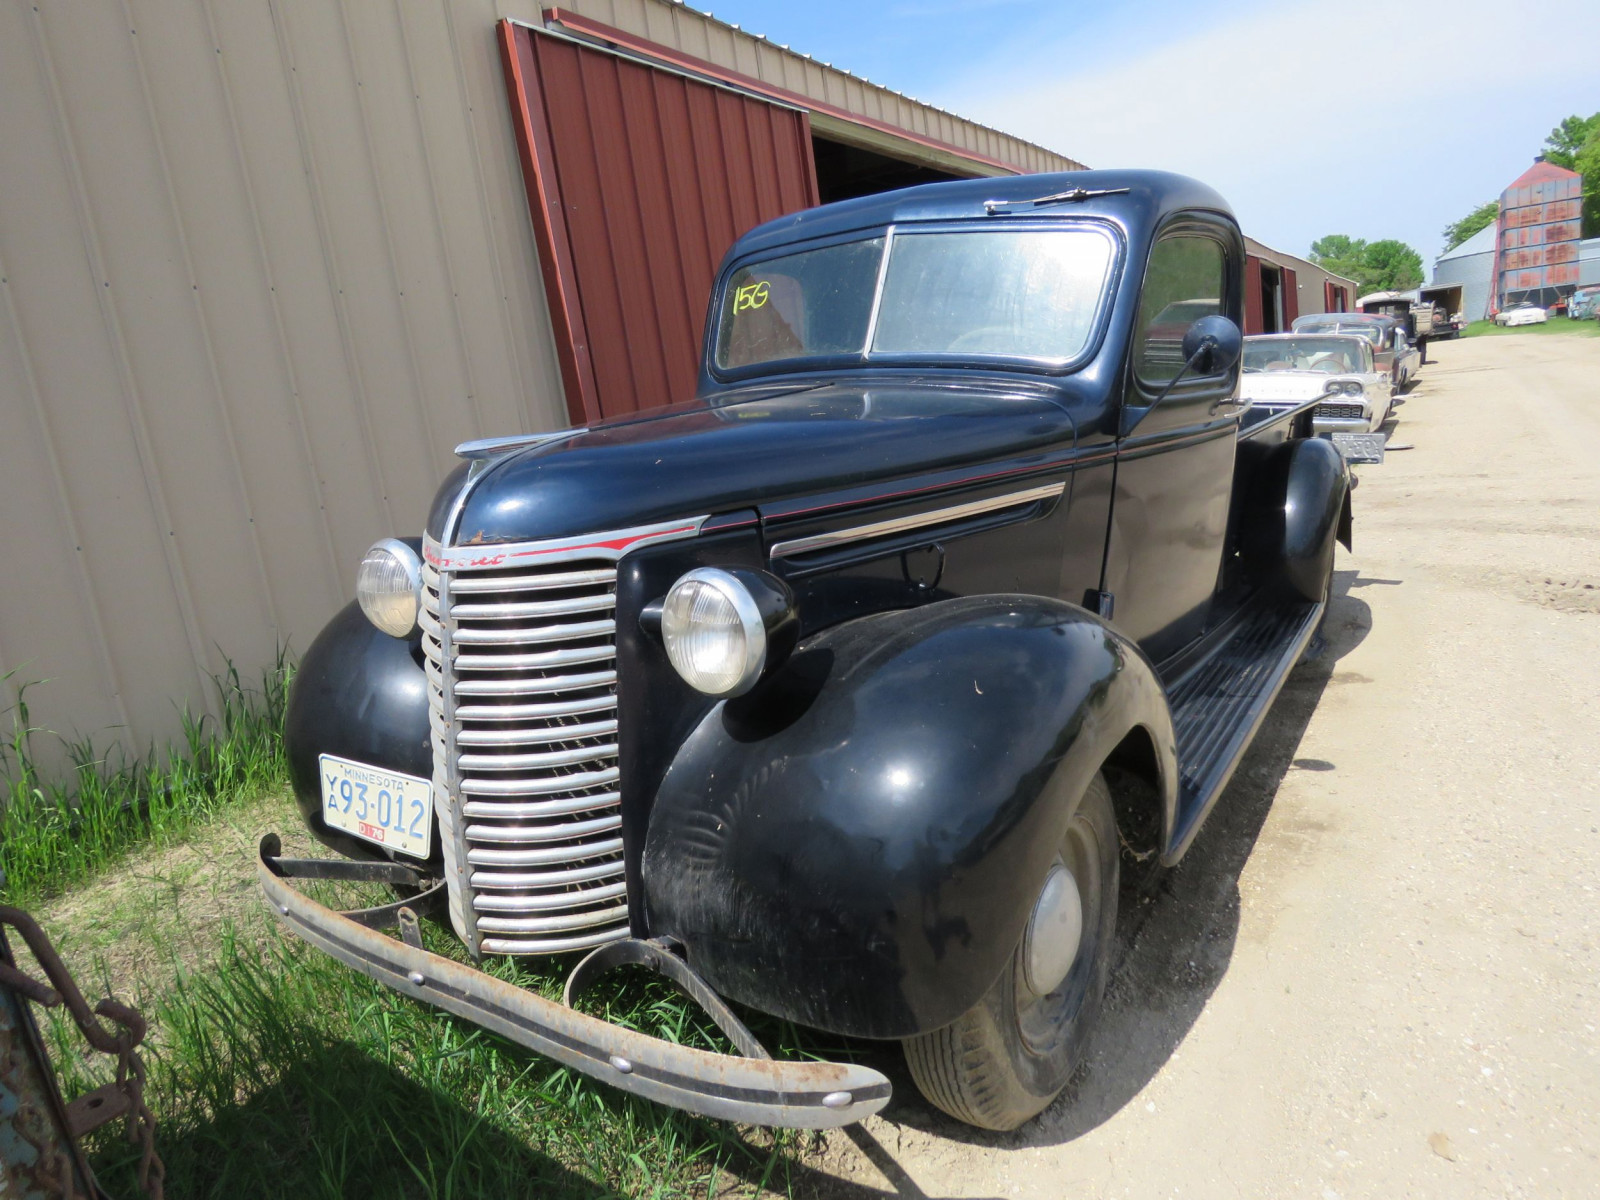 1939 Chevrolet Pickup 21JD057433 - Image 2